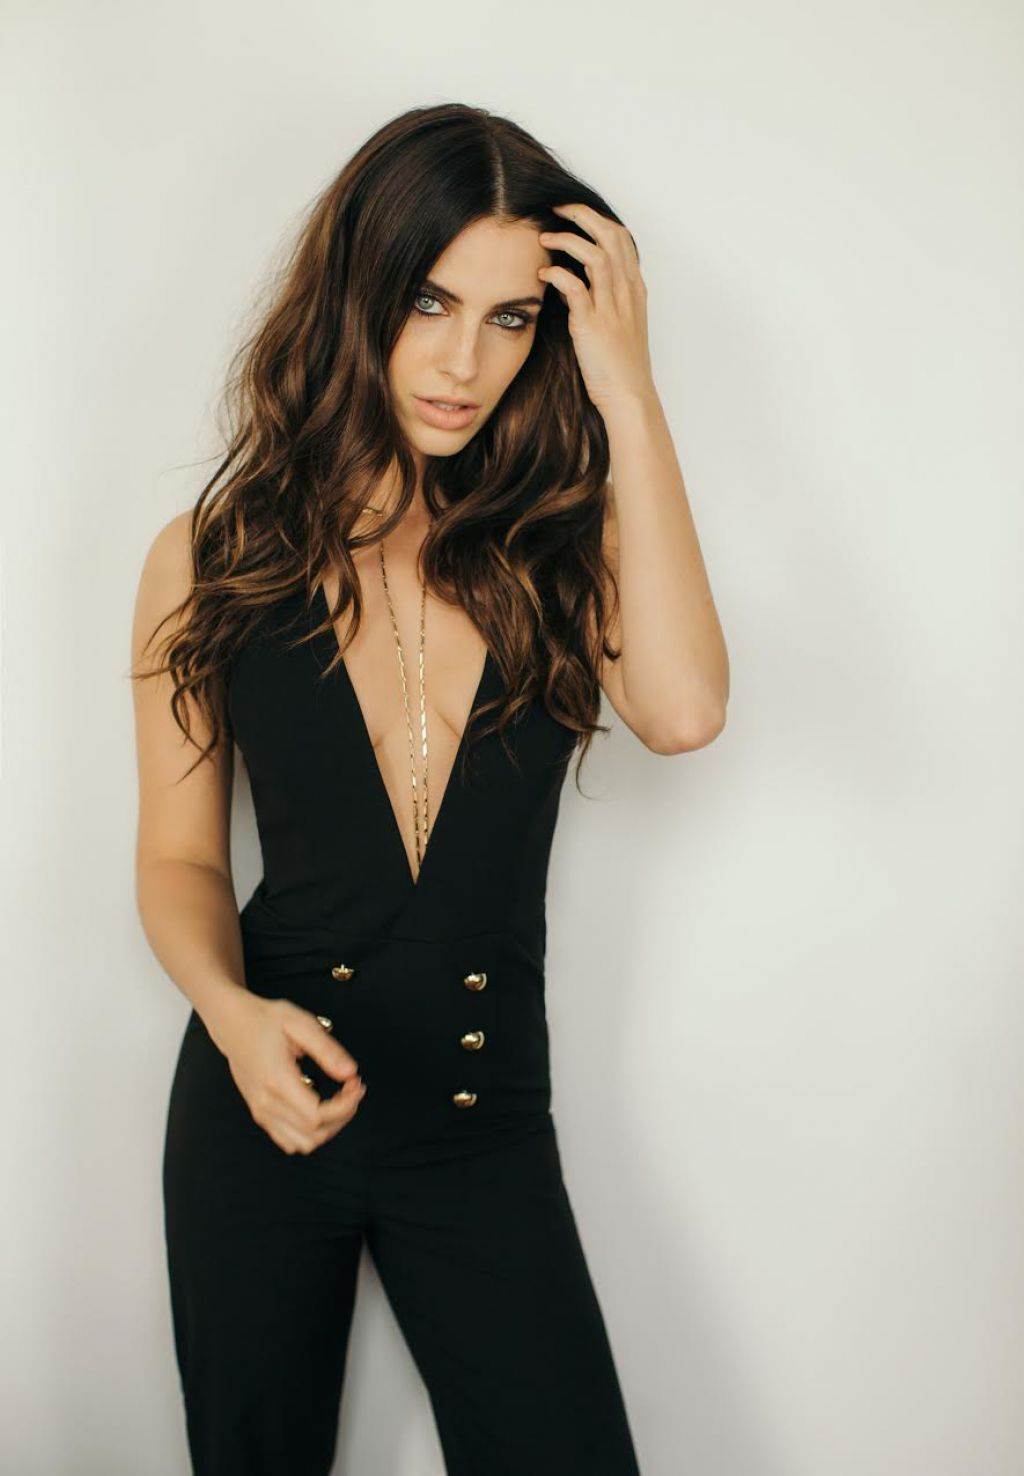 Jessica Lowndes - The Jumpsuit Photoshoot For Her Blog, March 2017